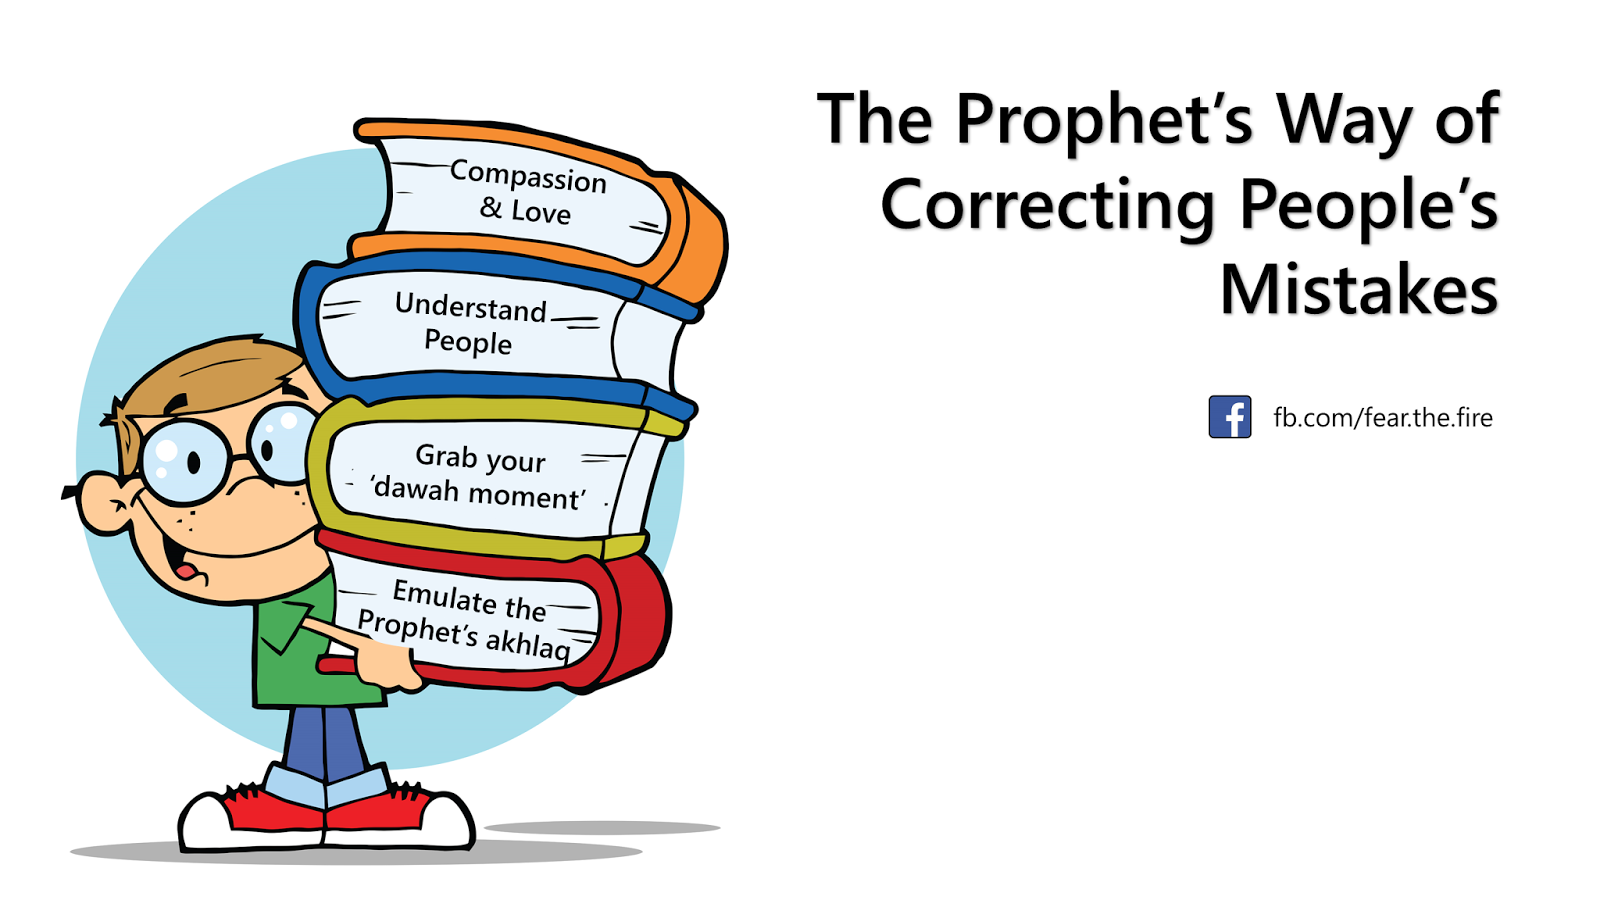 Prophet Muhammad's (pbuh) way of correcting people's mistakes